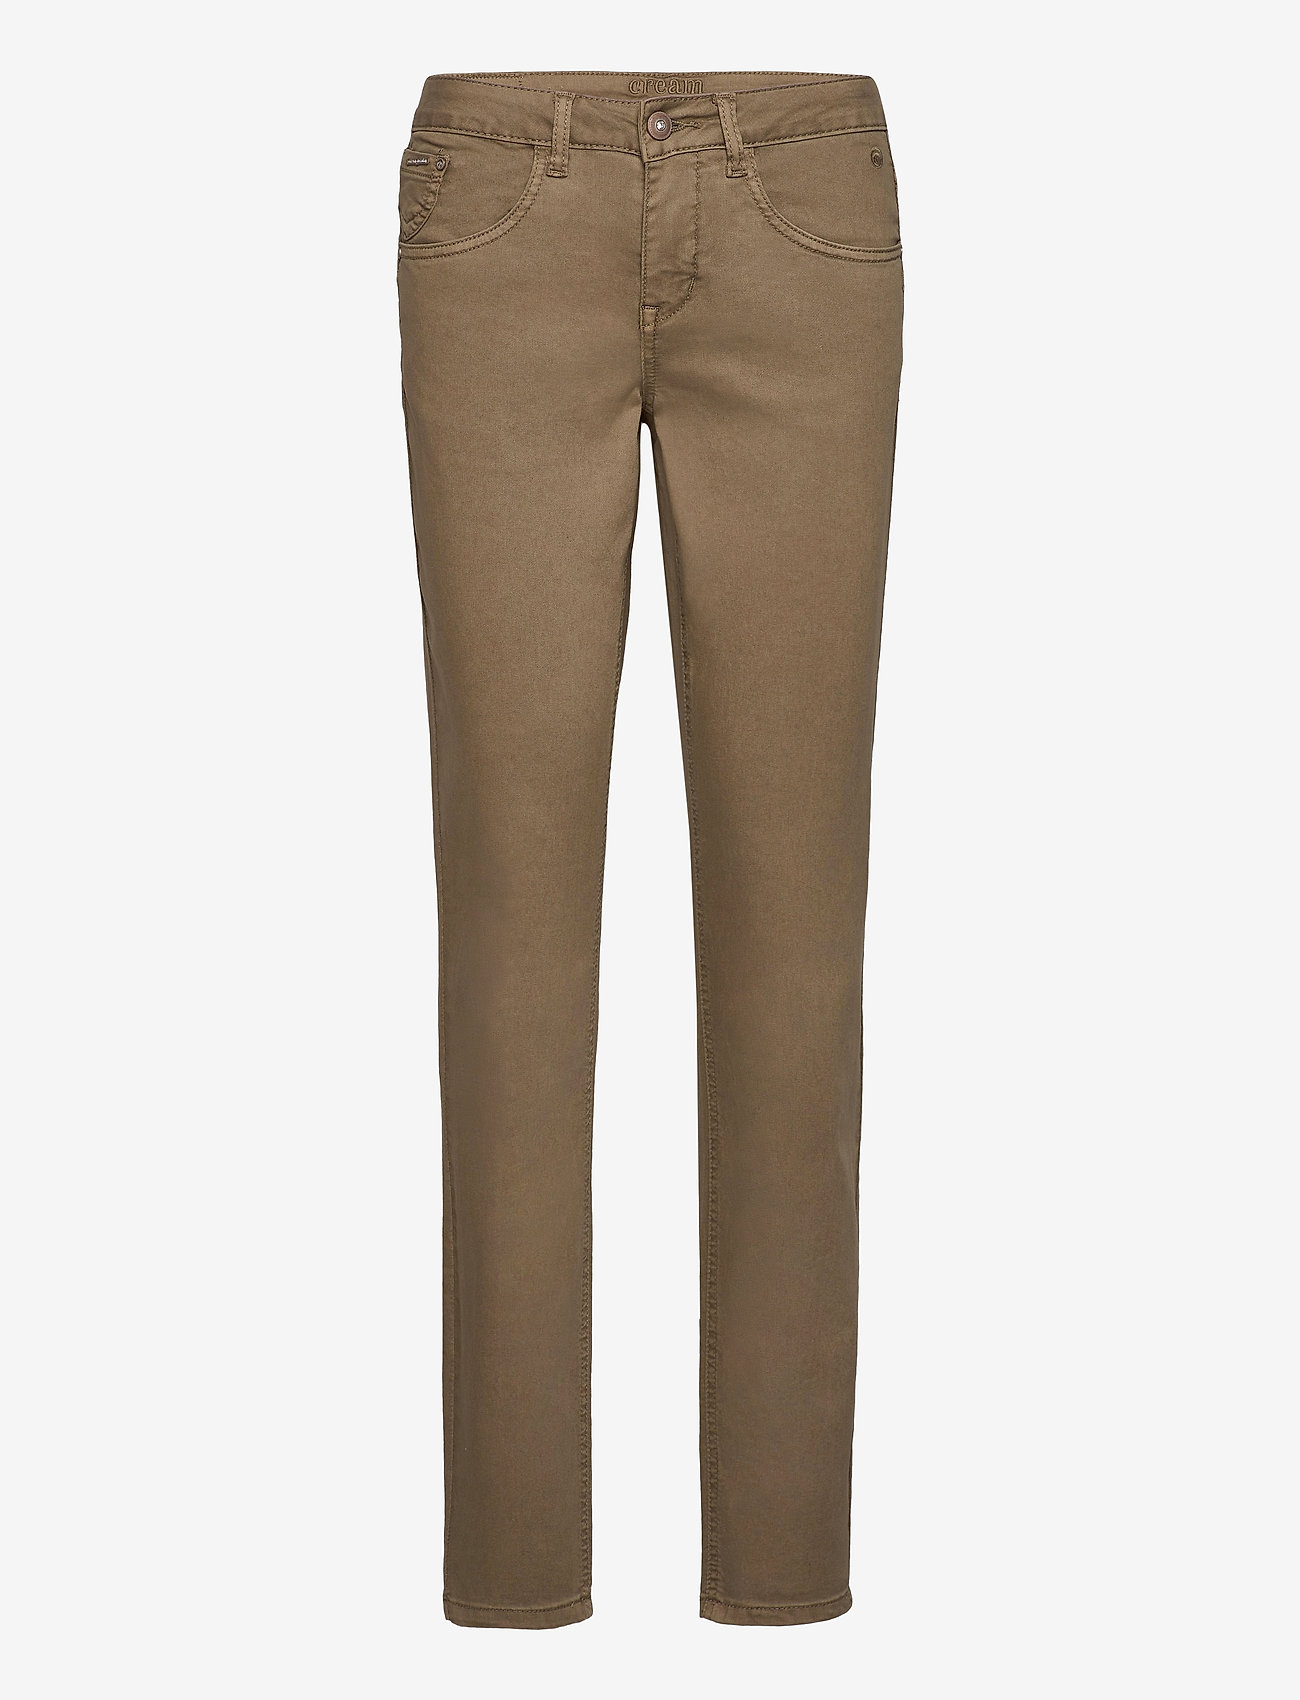 Cream - LotteCR Plain Twill - Coco Fit - skinny jeans - timber wolf - 0